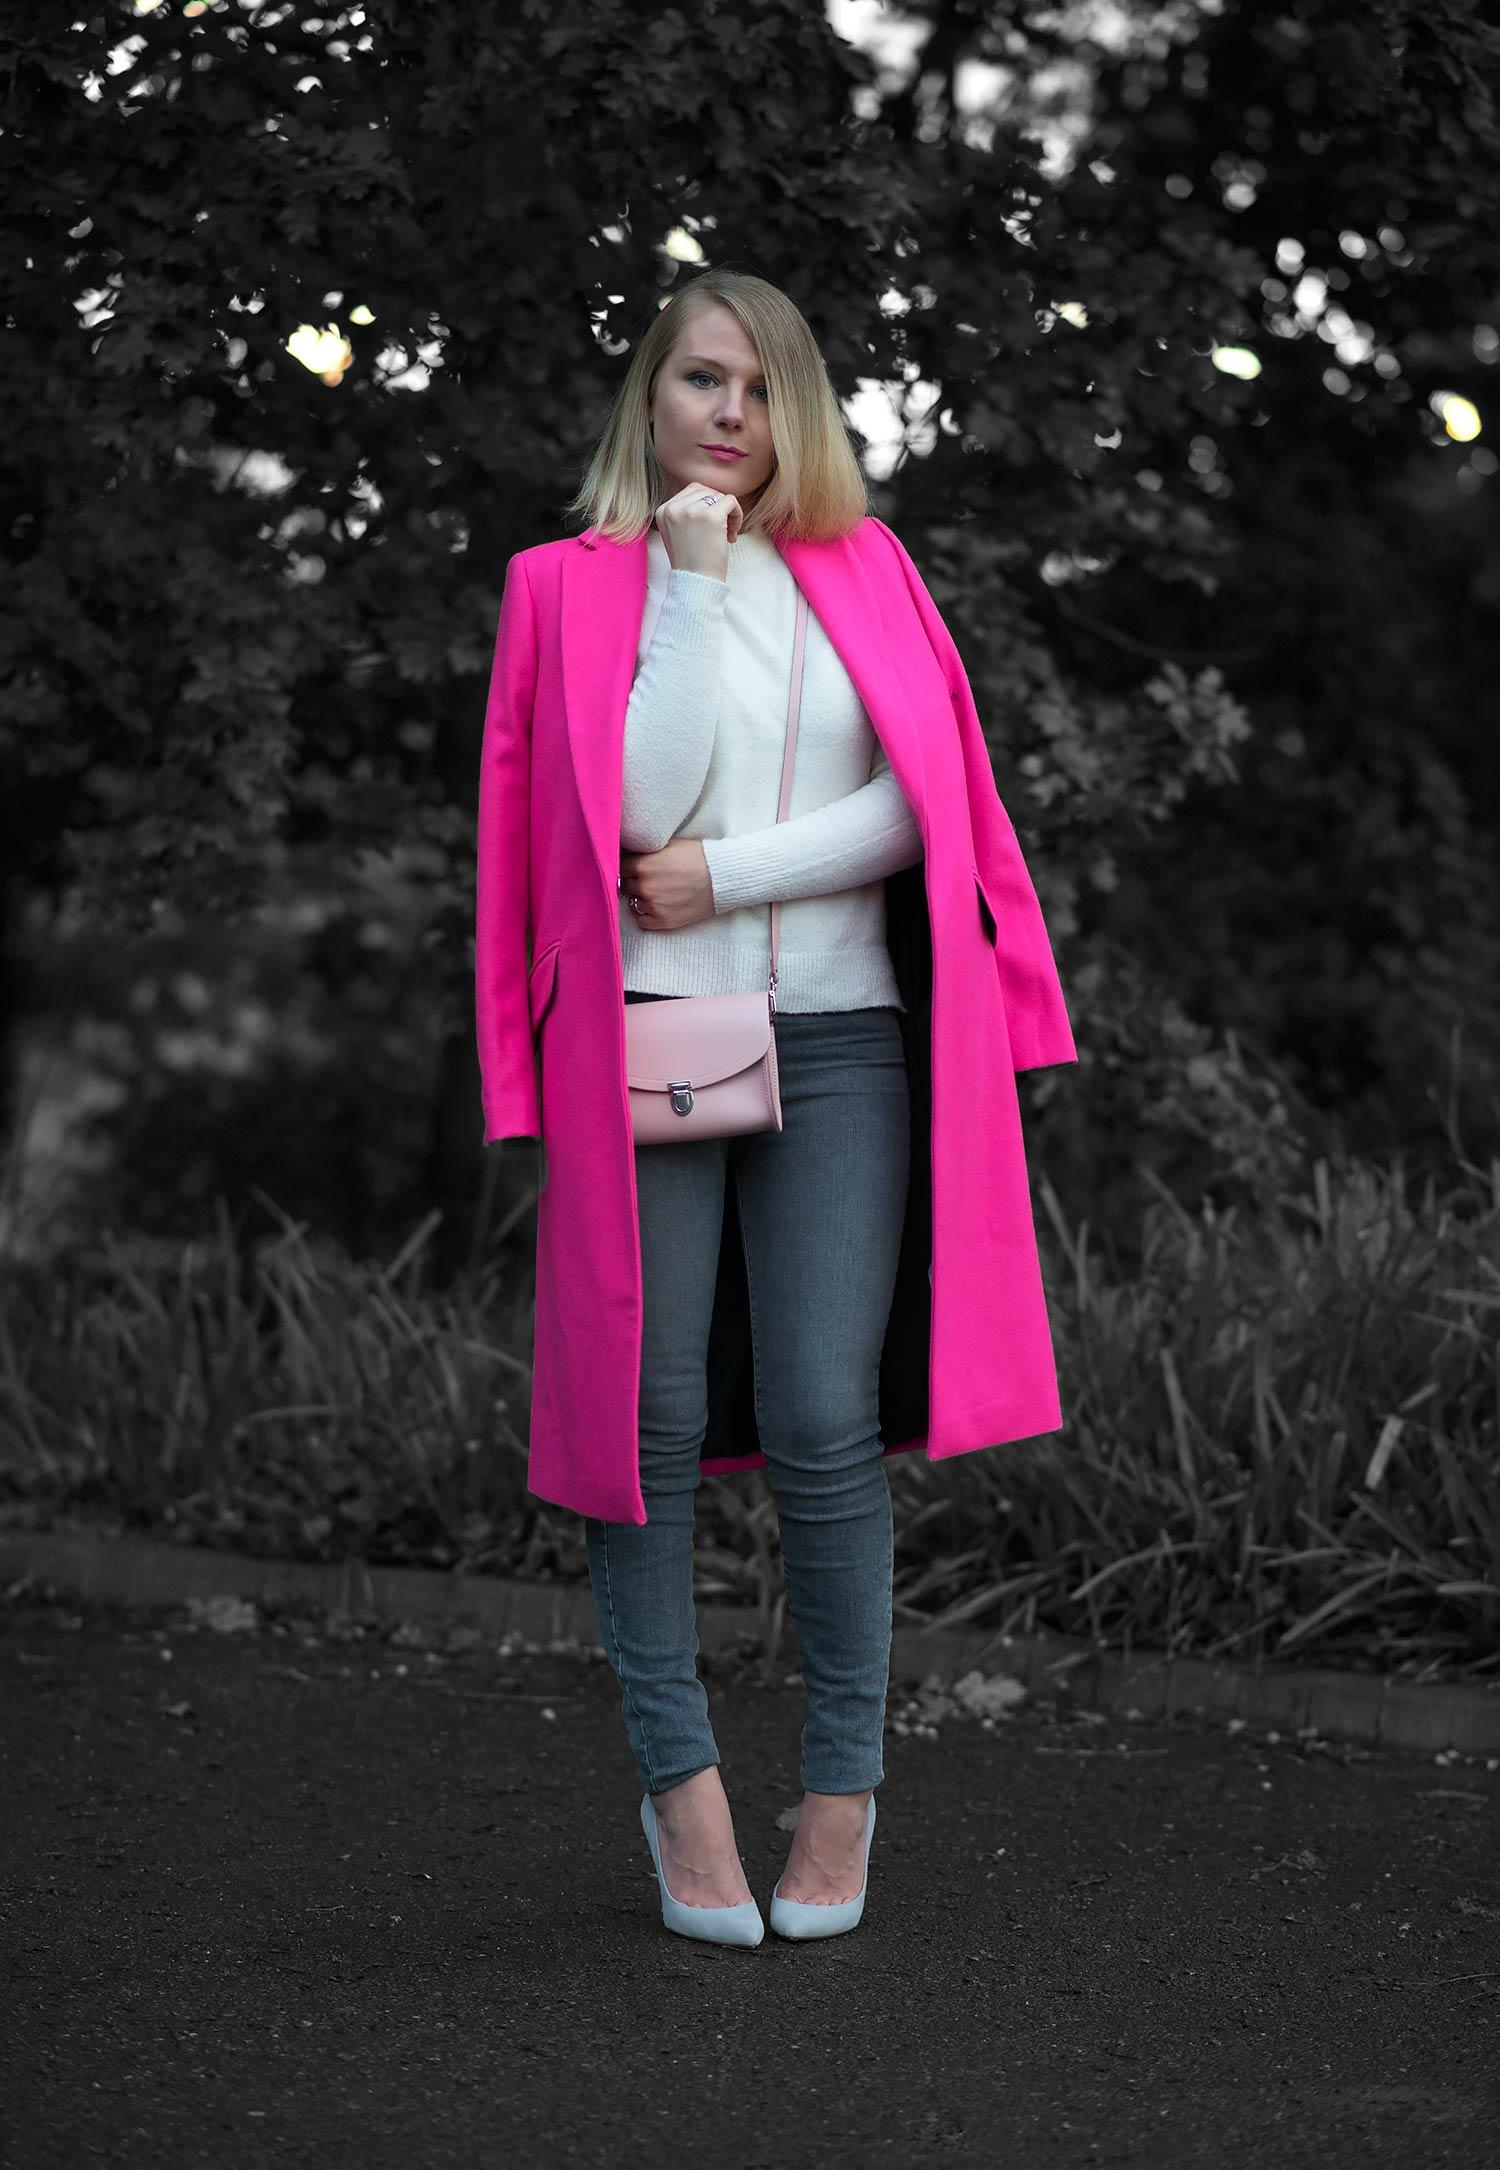 fashion-blogger-uk-pink-coat-topshop-grey-jeans